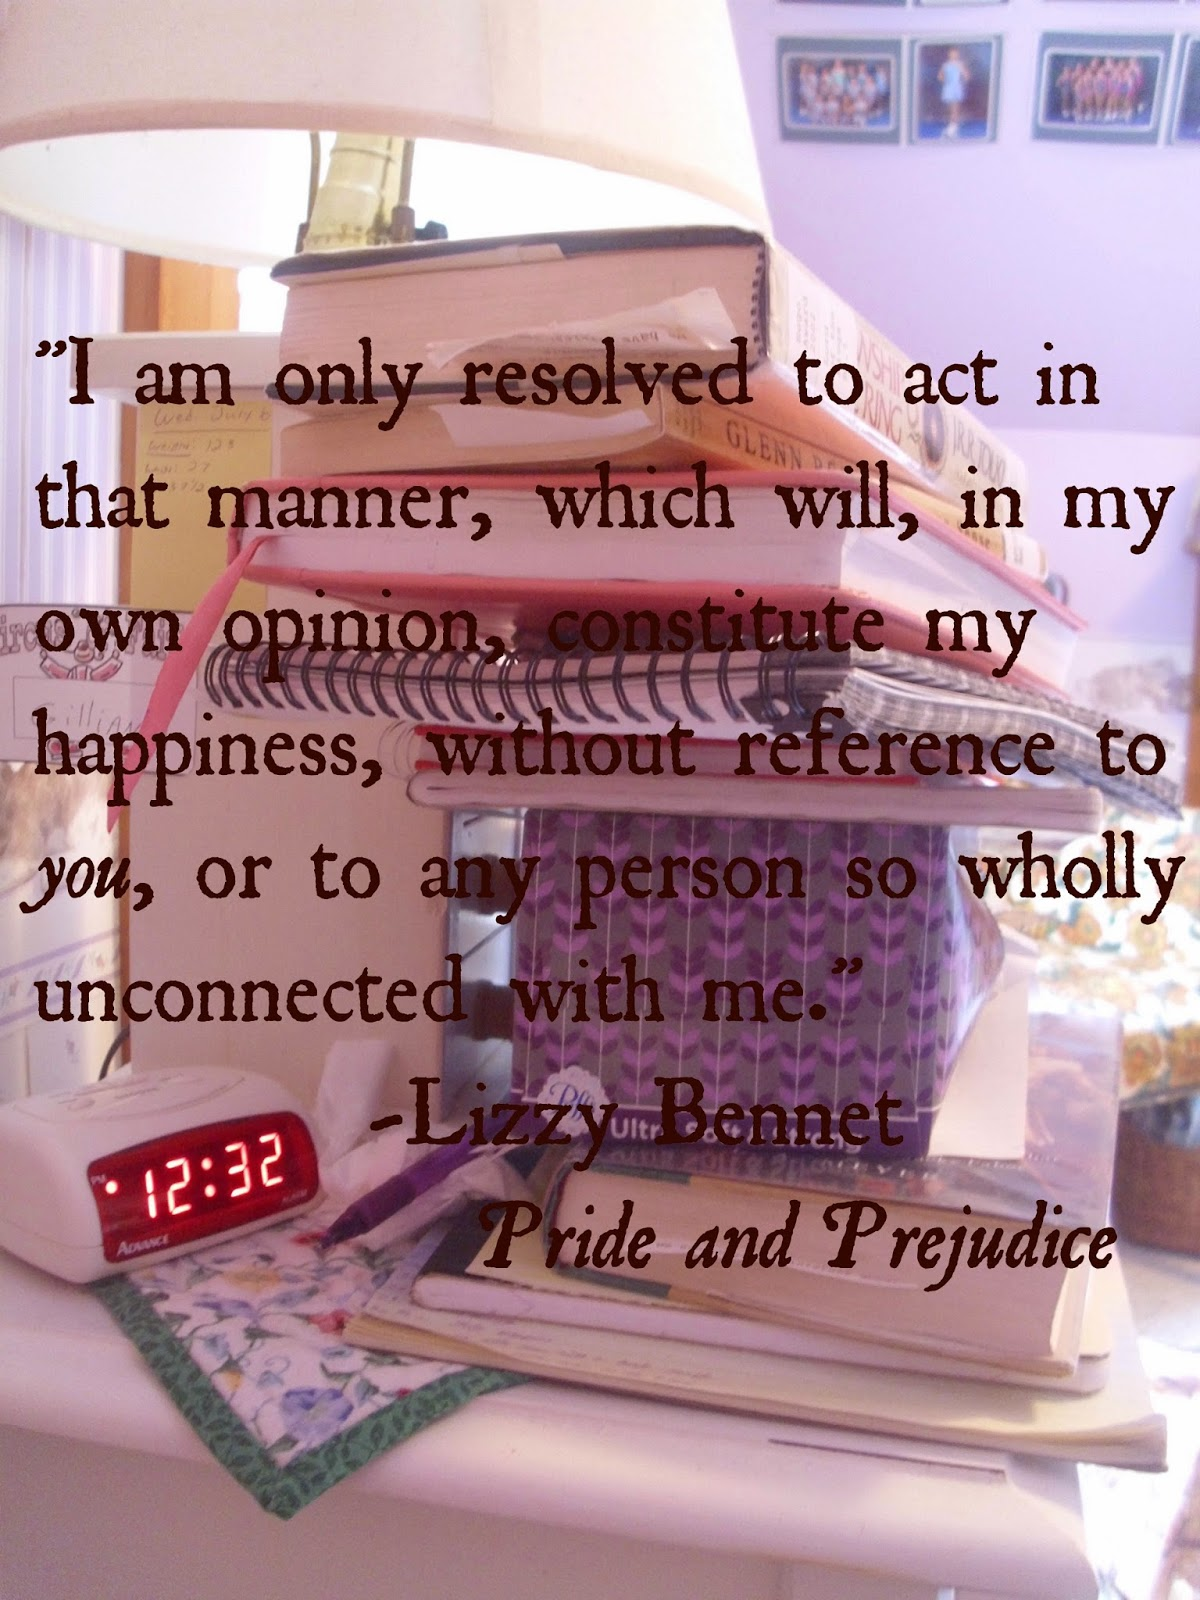 Lizzy Bennet Pride and Prejudice quote make your own happiness live your own life ll Young Yankee Lady